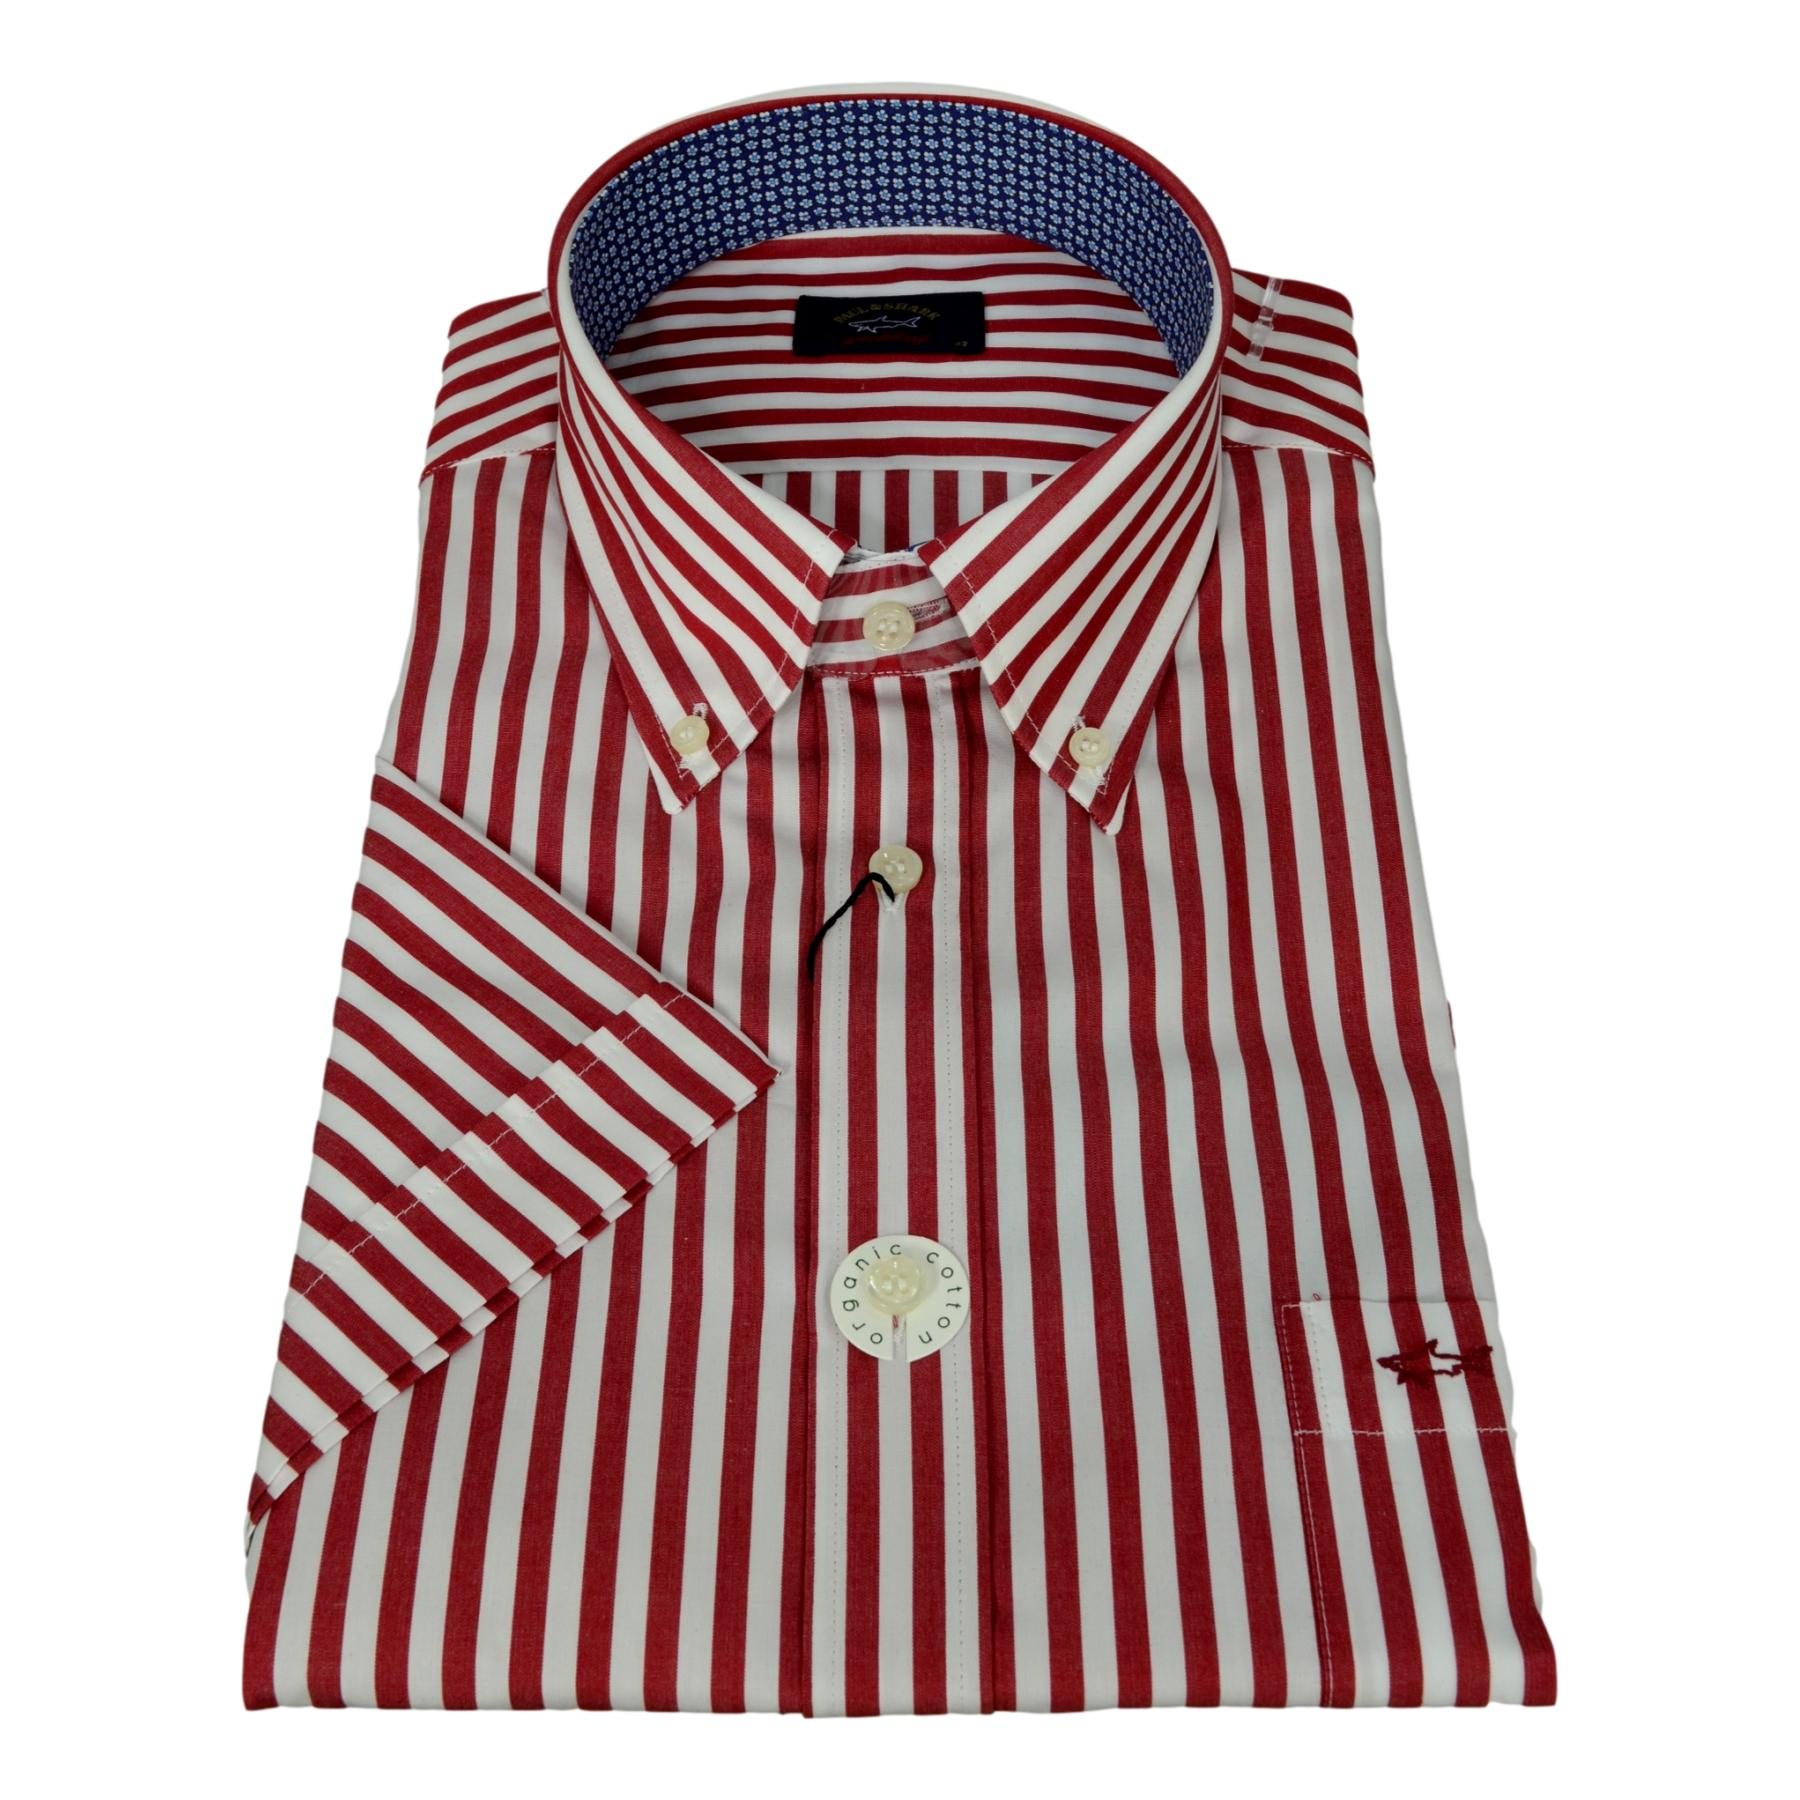 PAUL SHARK YACHTING COLLECTION CAMICIA MANICA CORTA UOMO RIGATA RED BOTTON DOWN